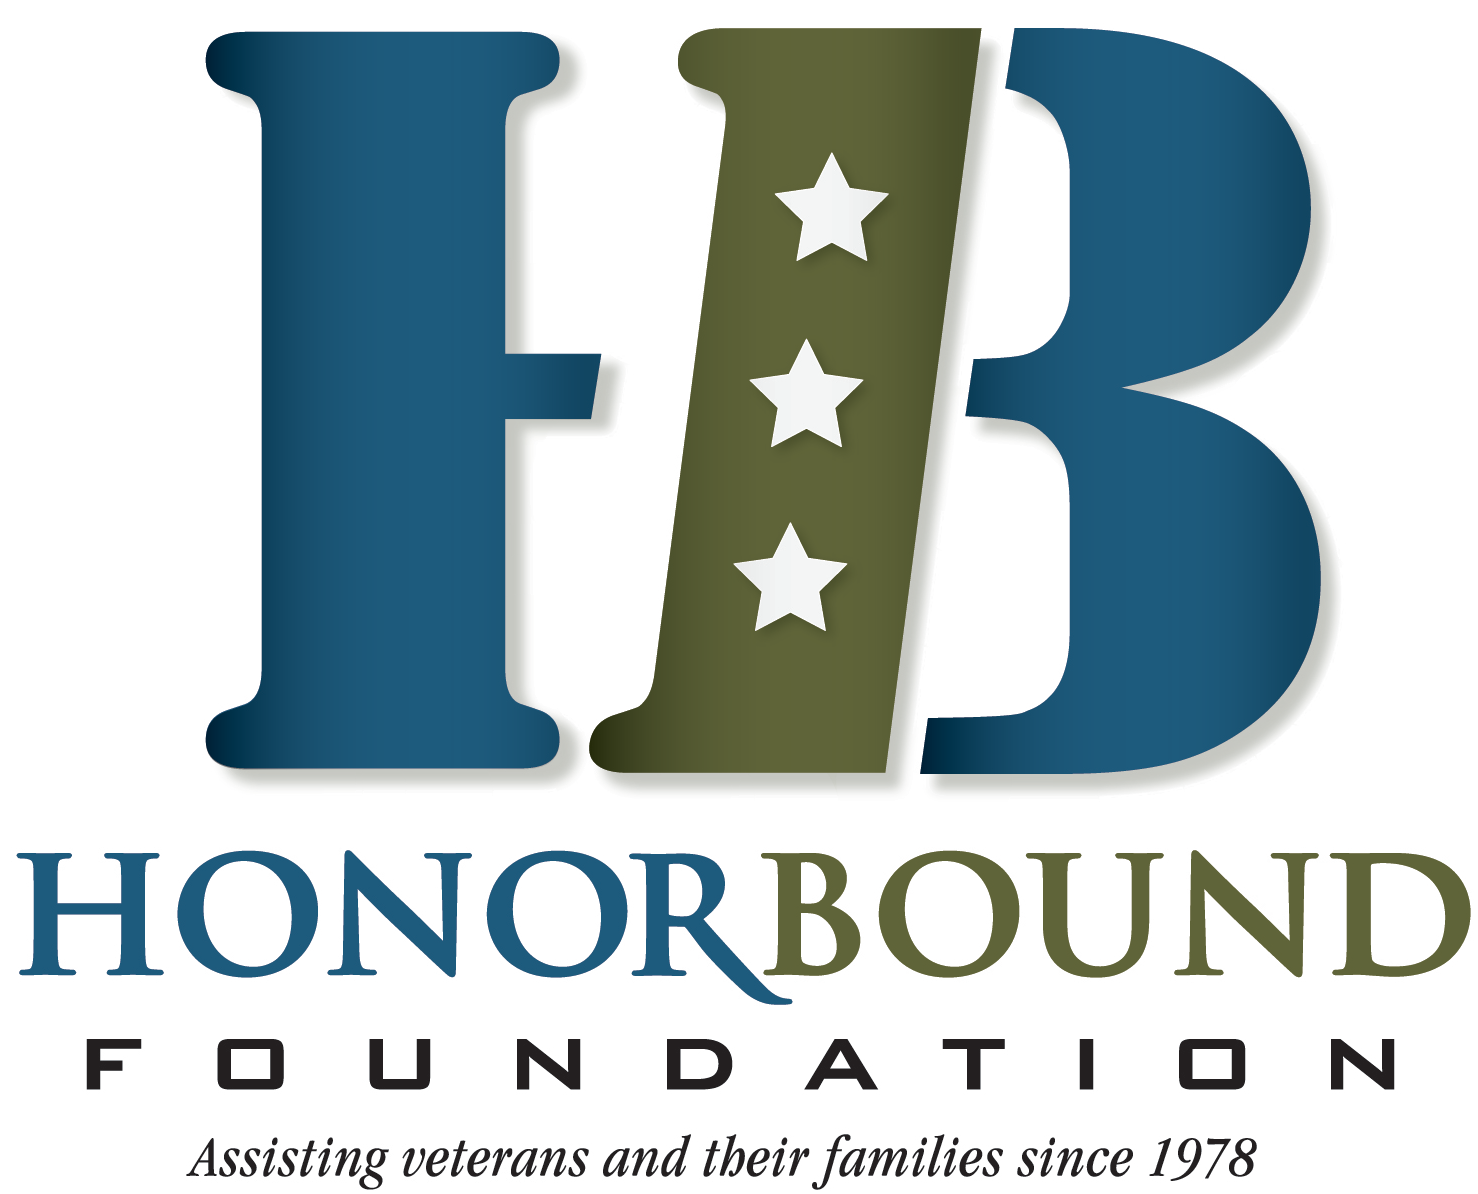 Maine Car Donations - HonorBound Foundation - DonatecarUSA.com